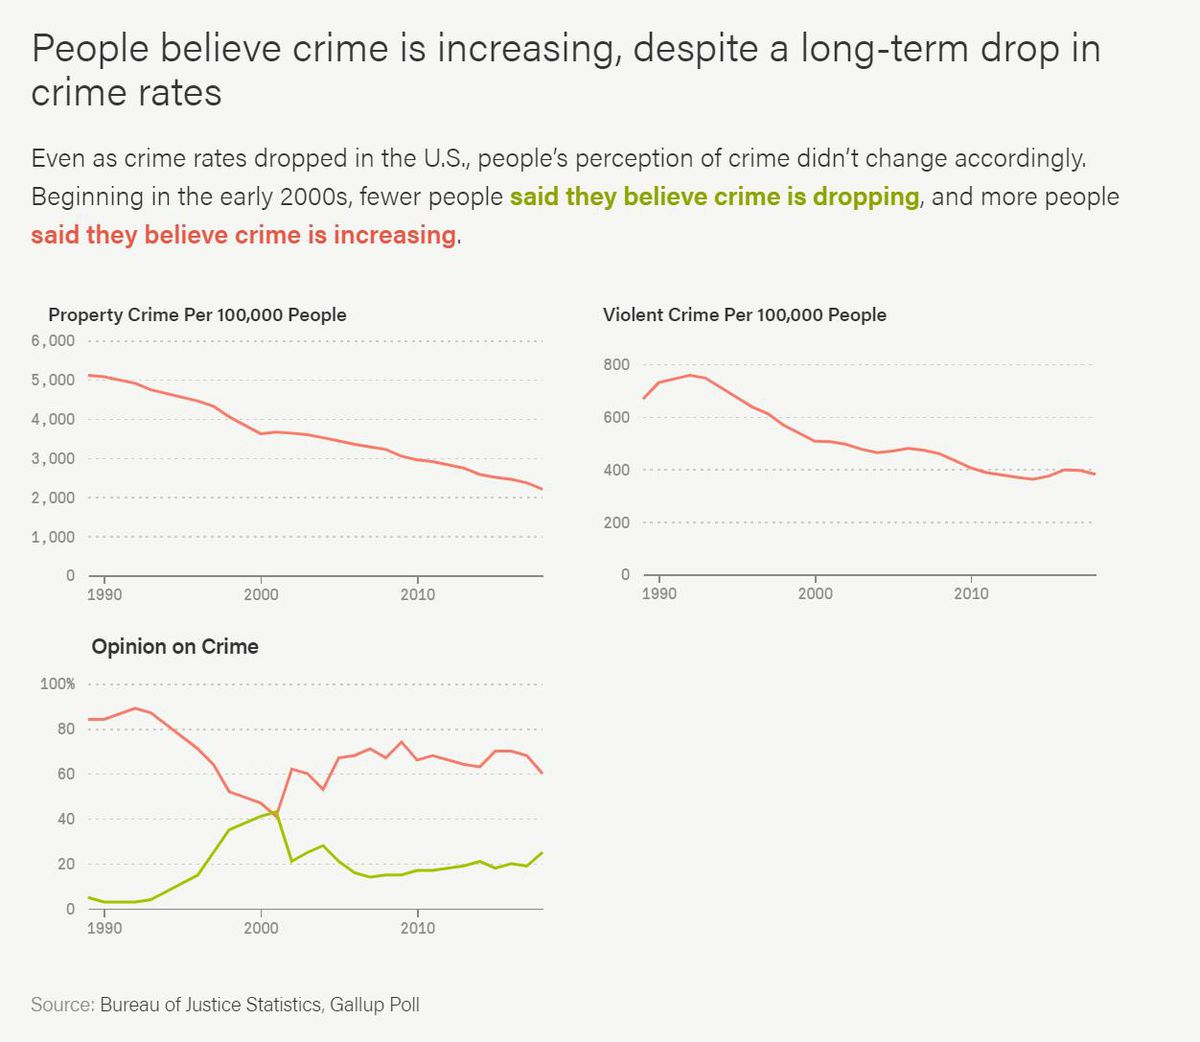 Beginning in the early 2000s, more people began to believe there are more crimes happening in the country, despite data showing otherwise.